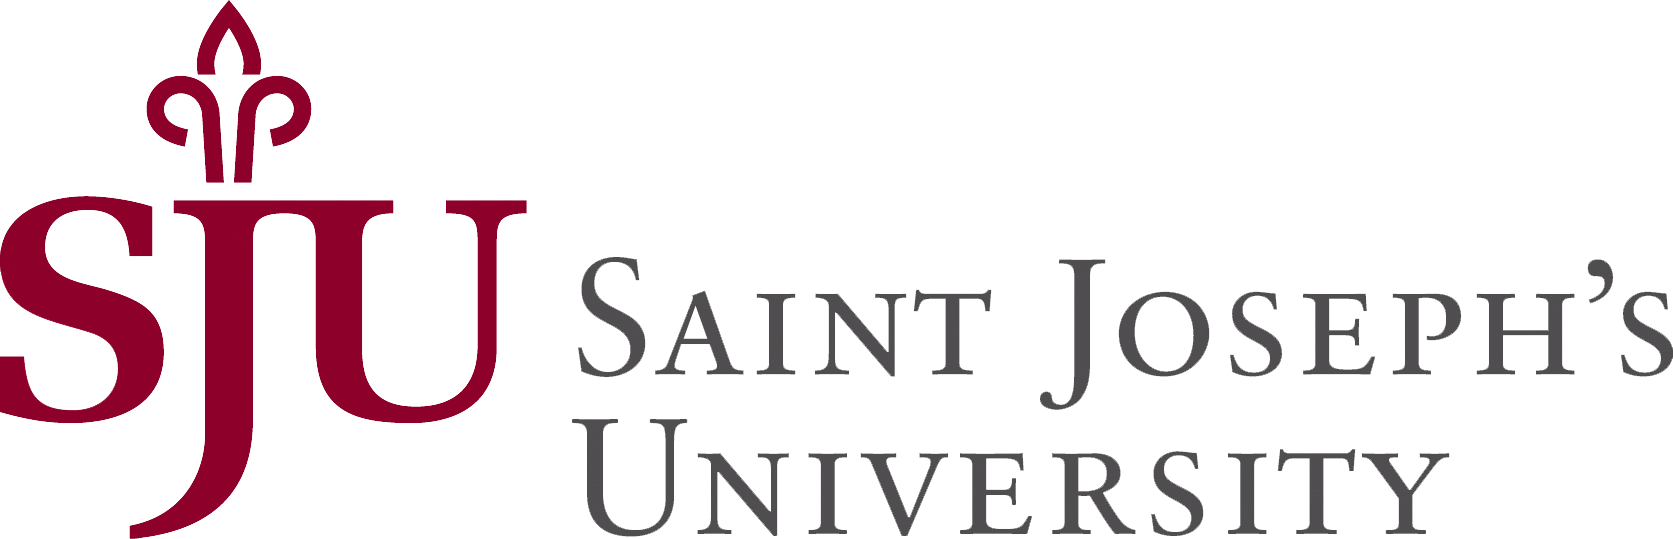 st-josephs-university-logo.png